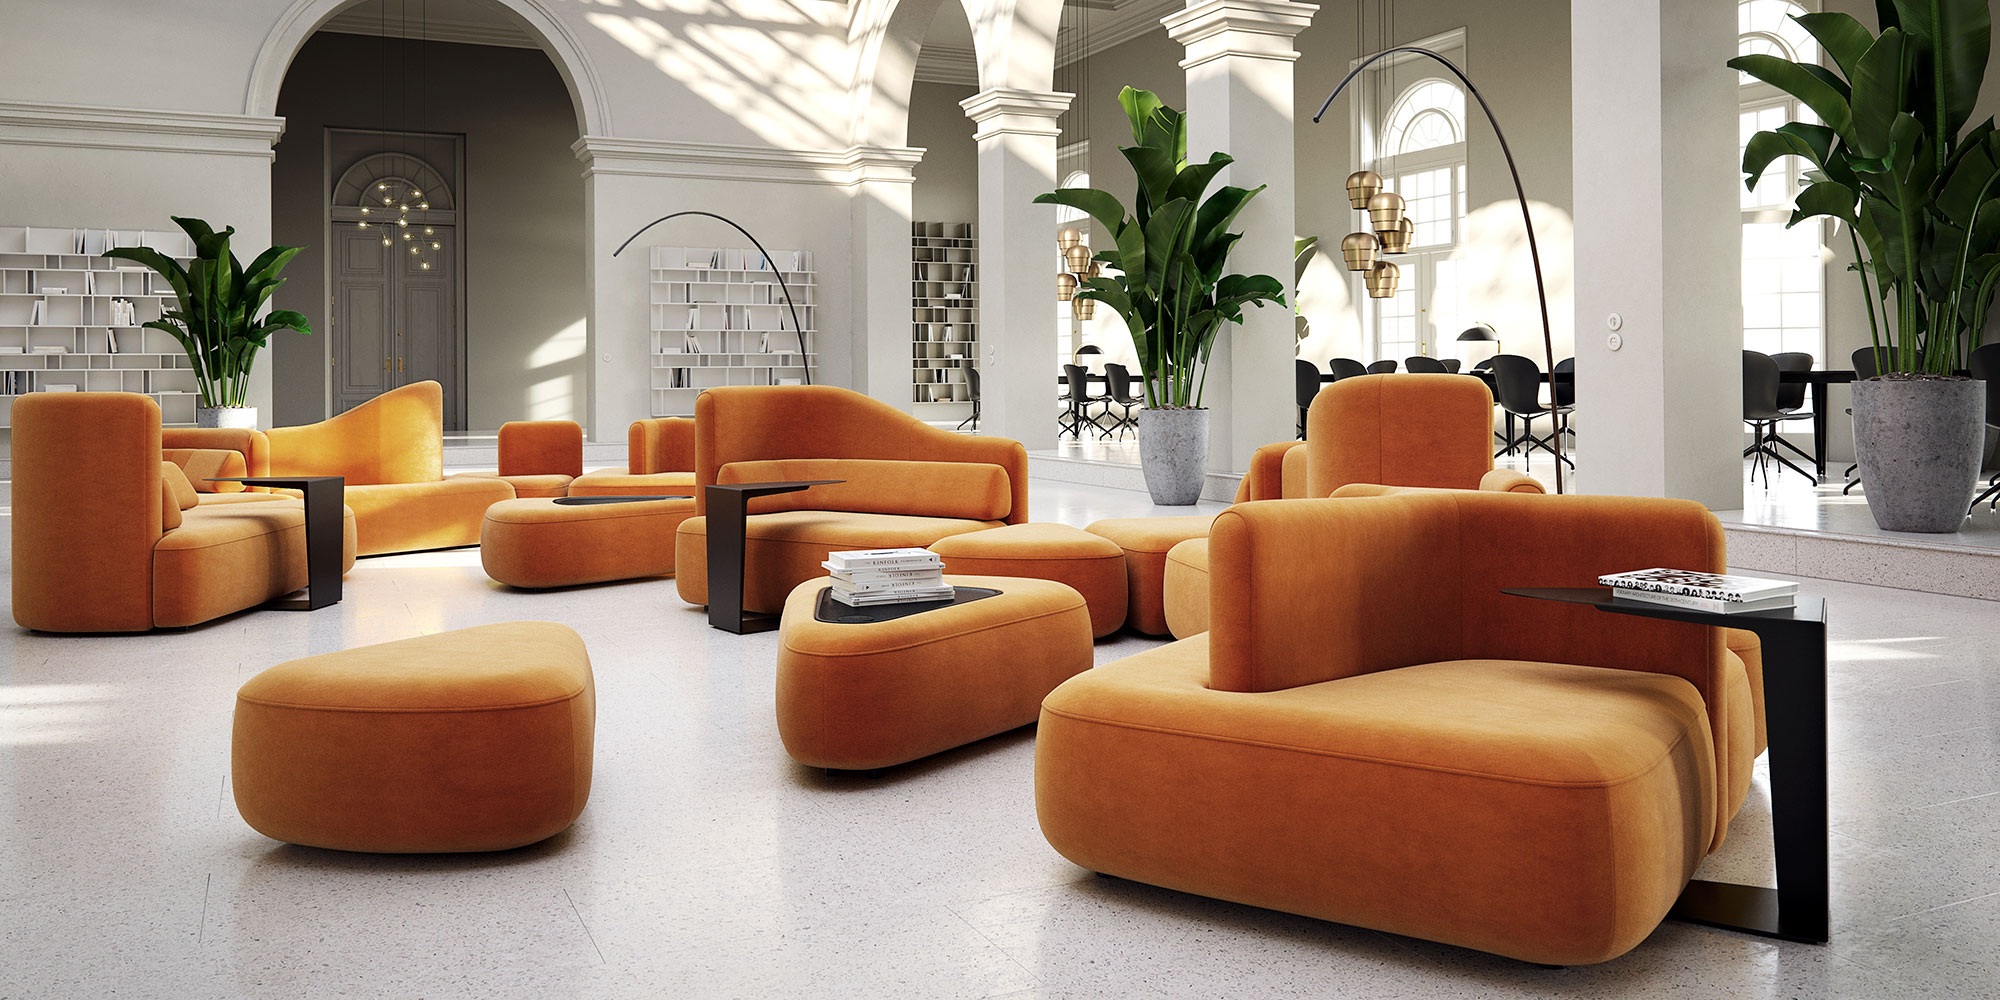 Ottowa Sofa collection with poufs and side tables